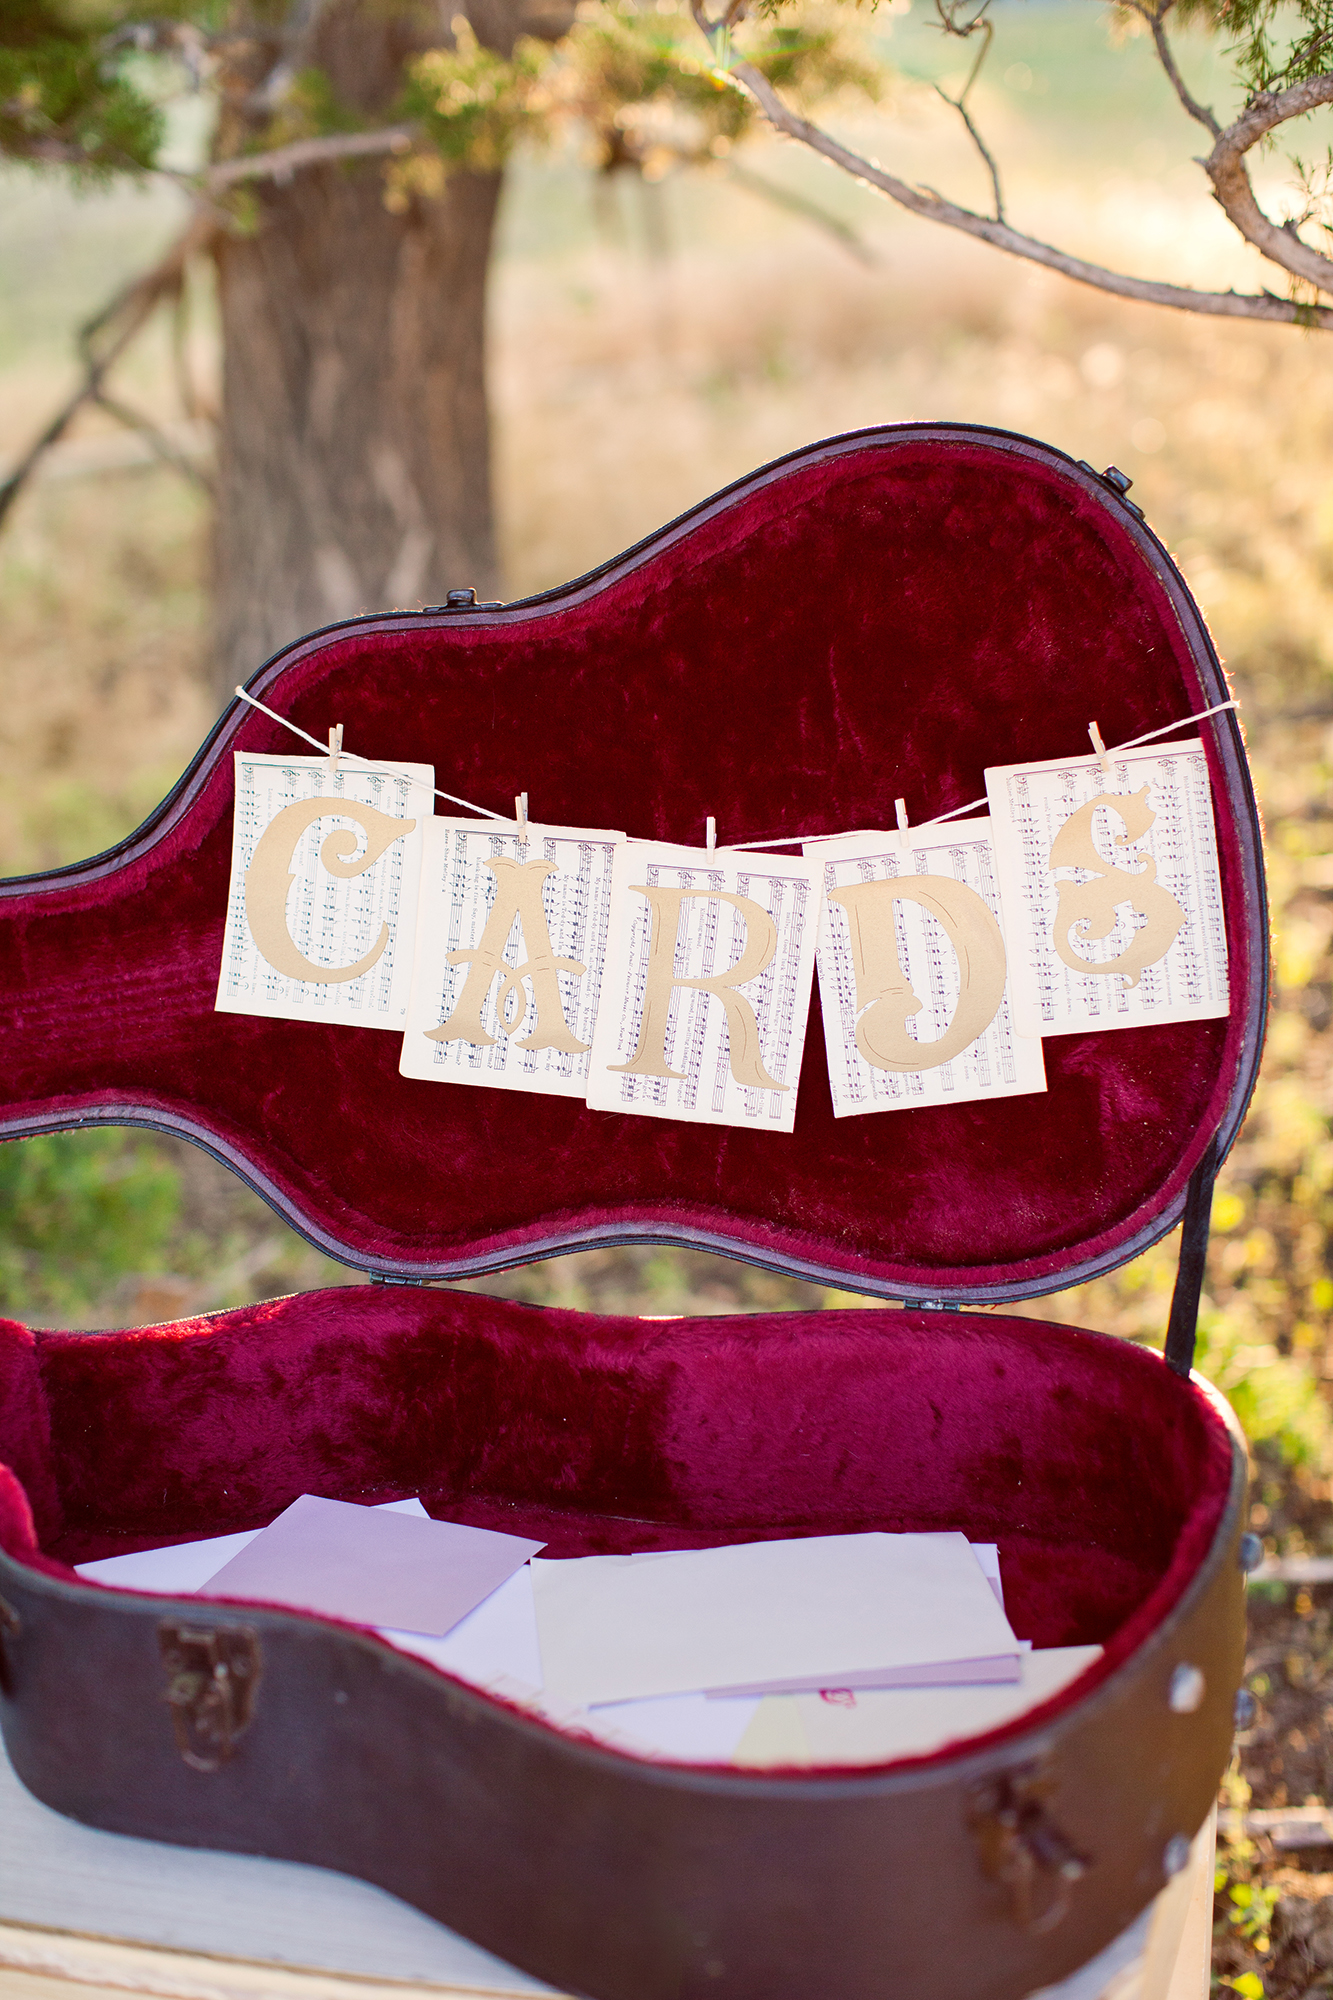 Guitar Case For Cards